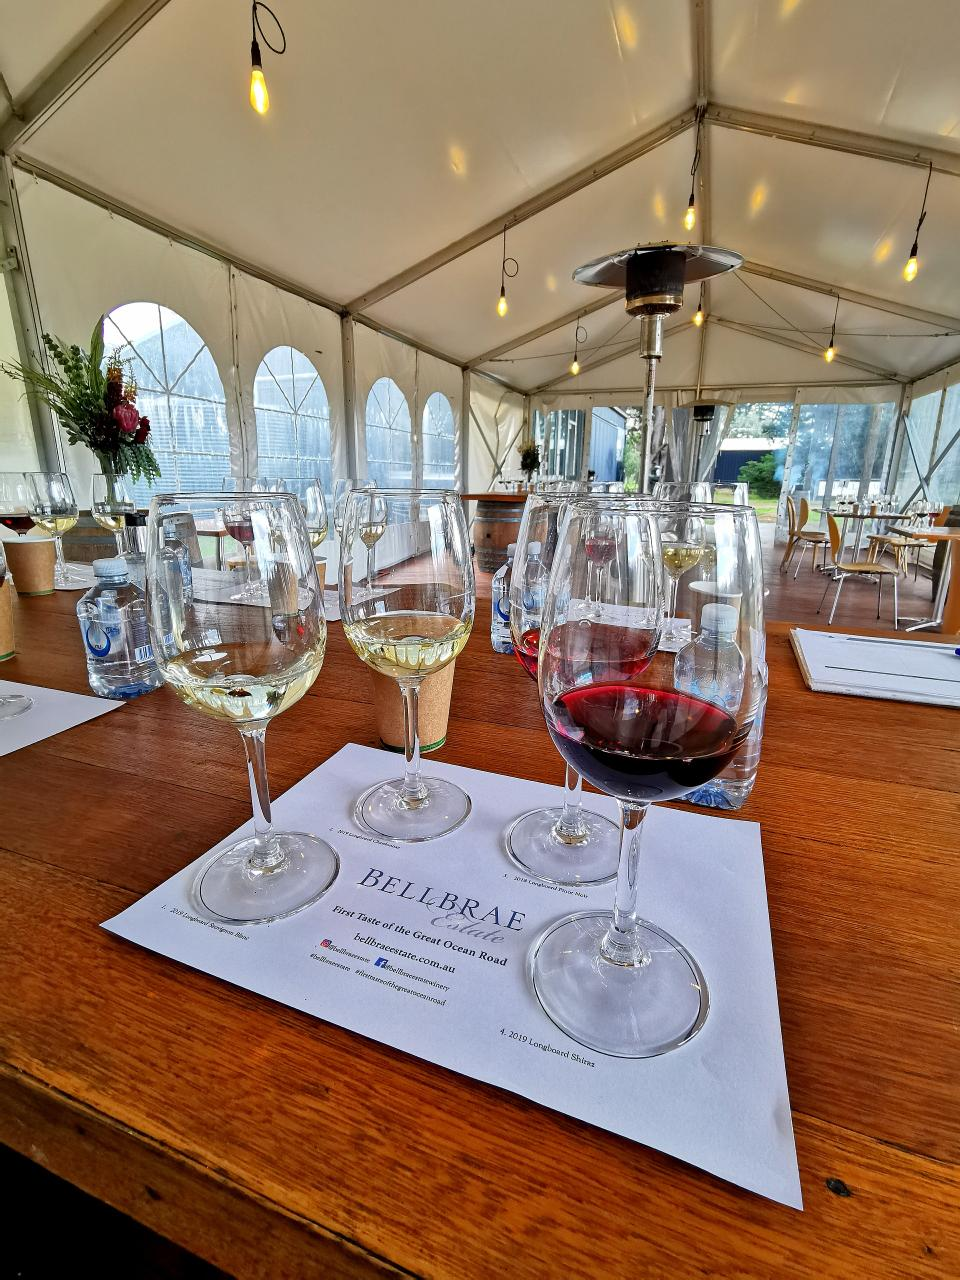 Wine Tasting Experience at Bellbrae Estate